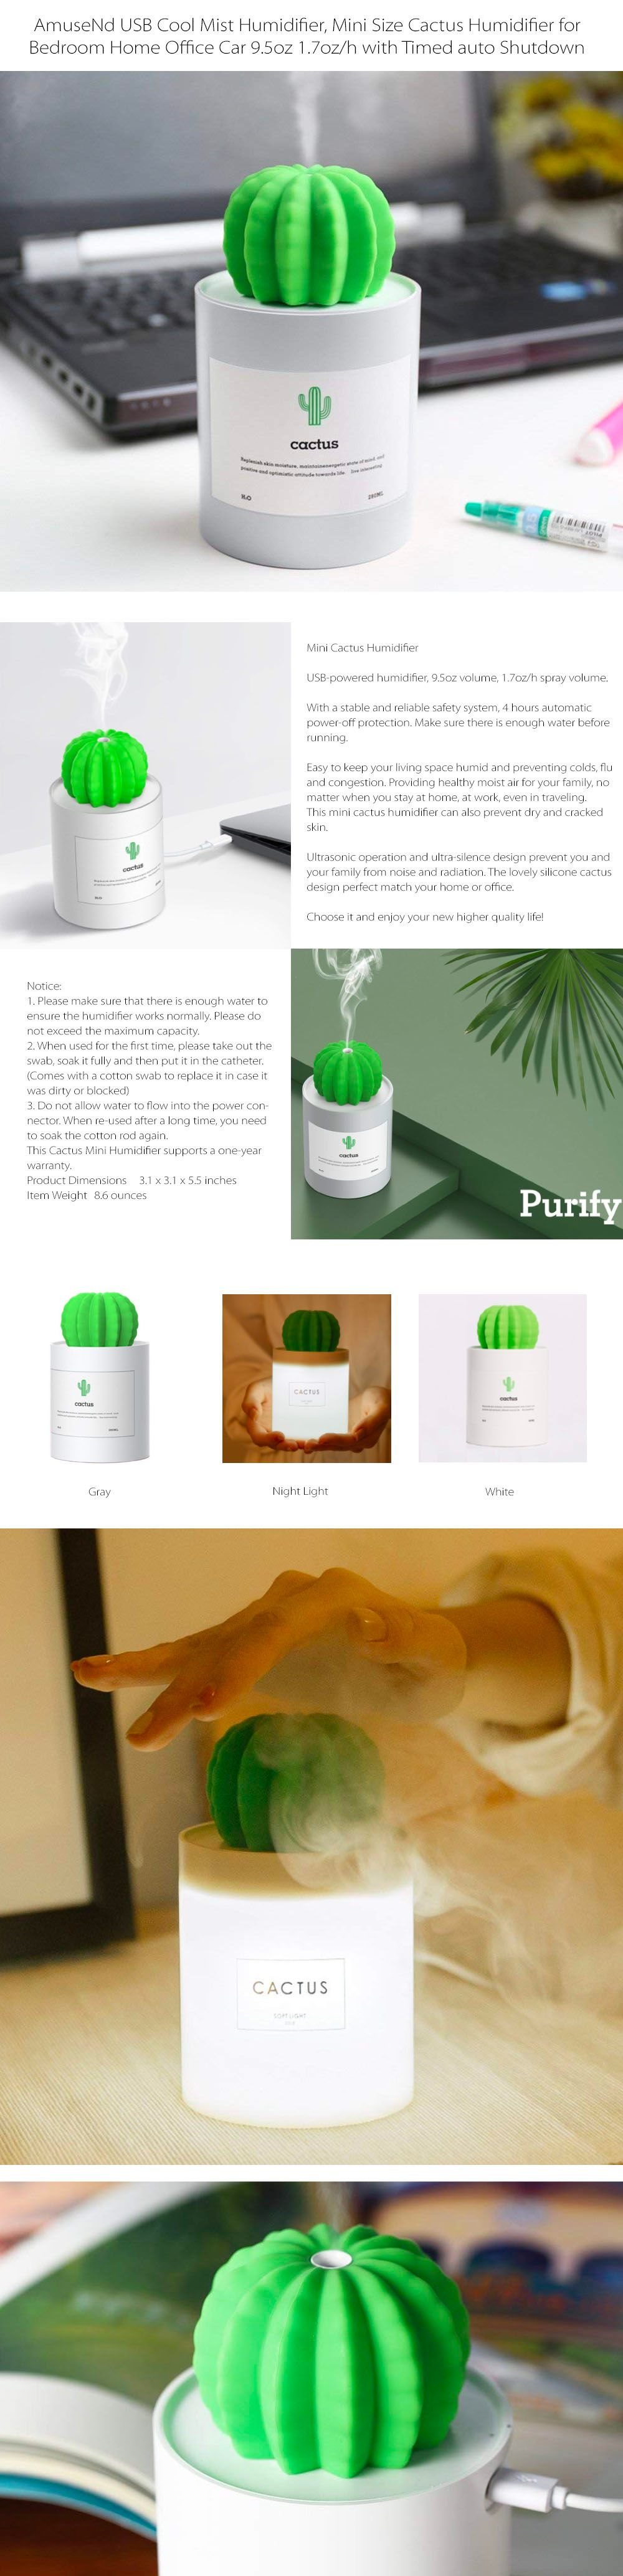 Mini Cactus Humidifier Portable Humidifier